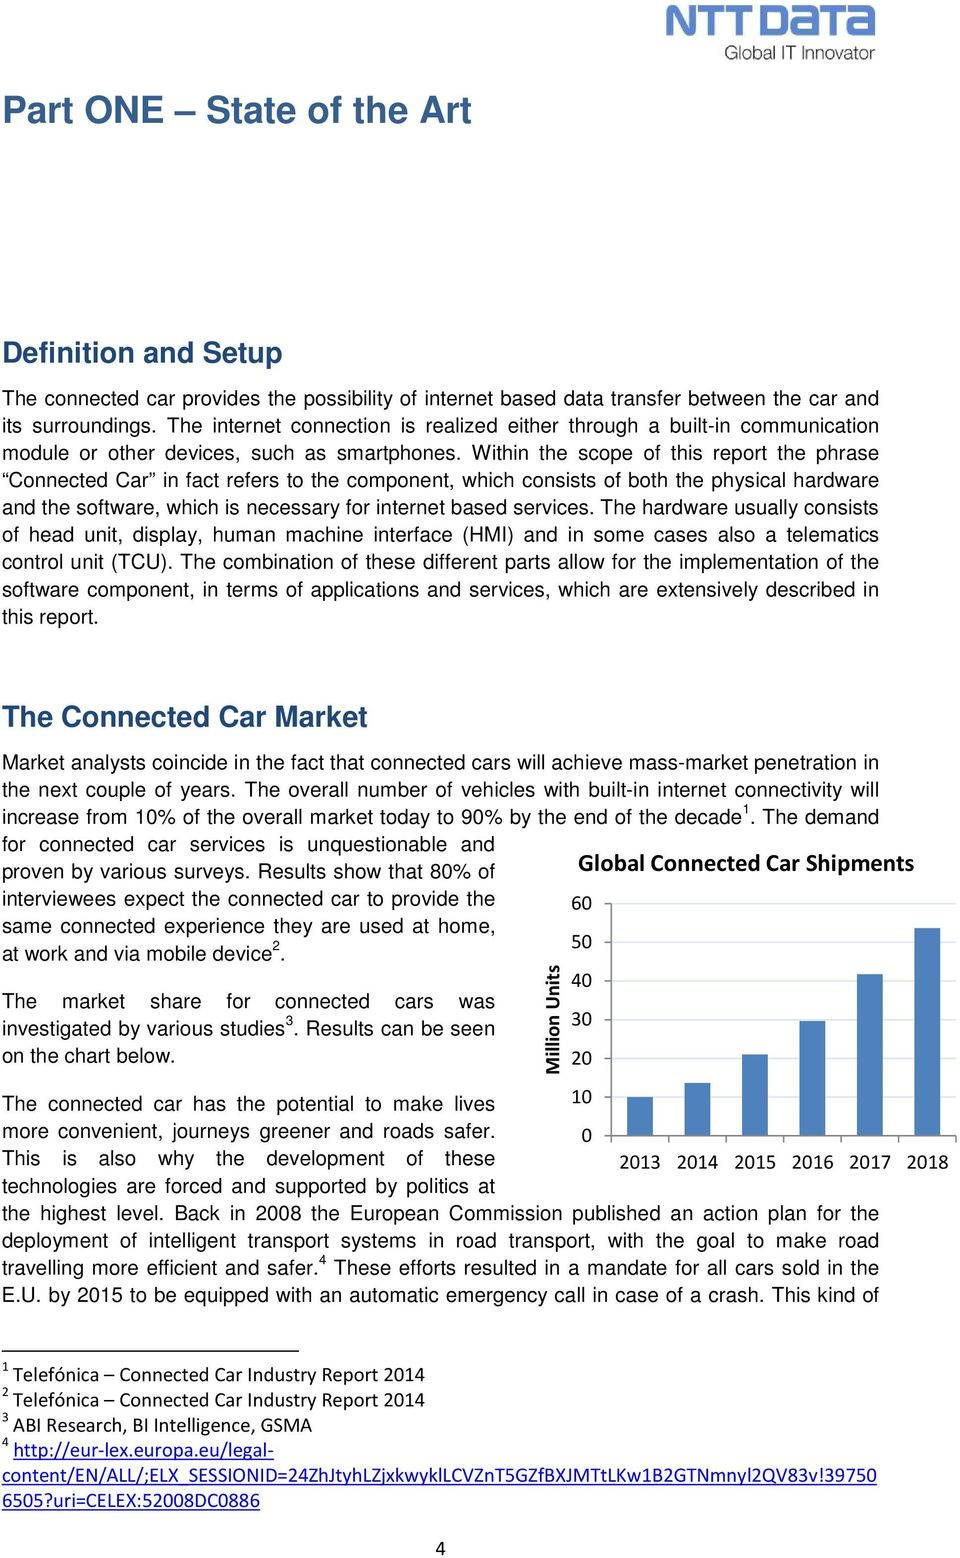 Connected Car Report - PDF